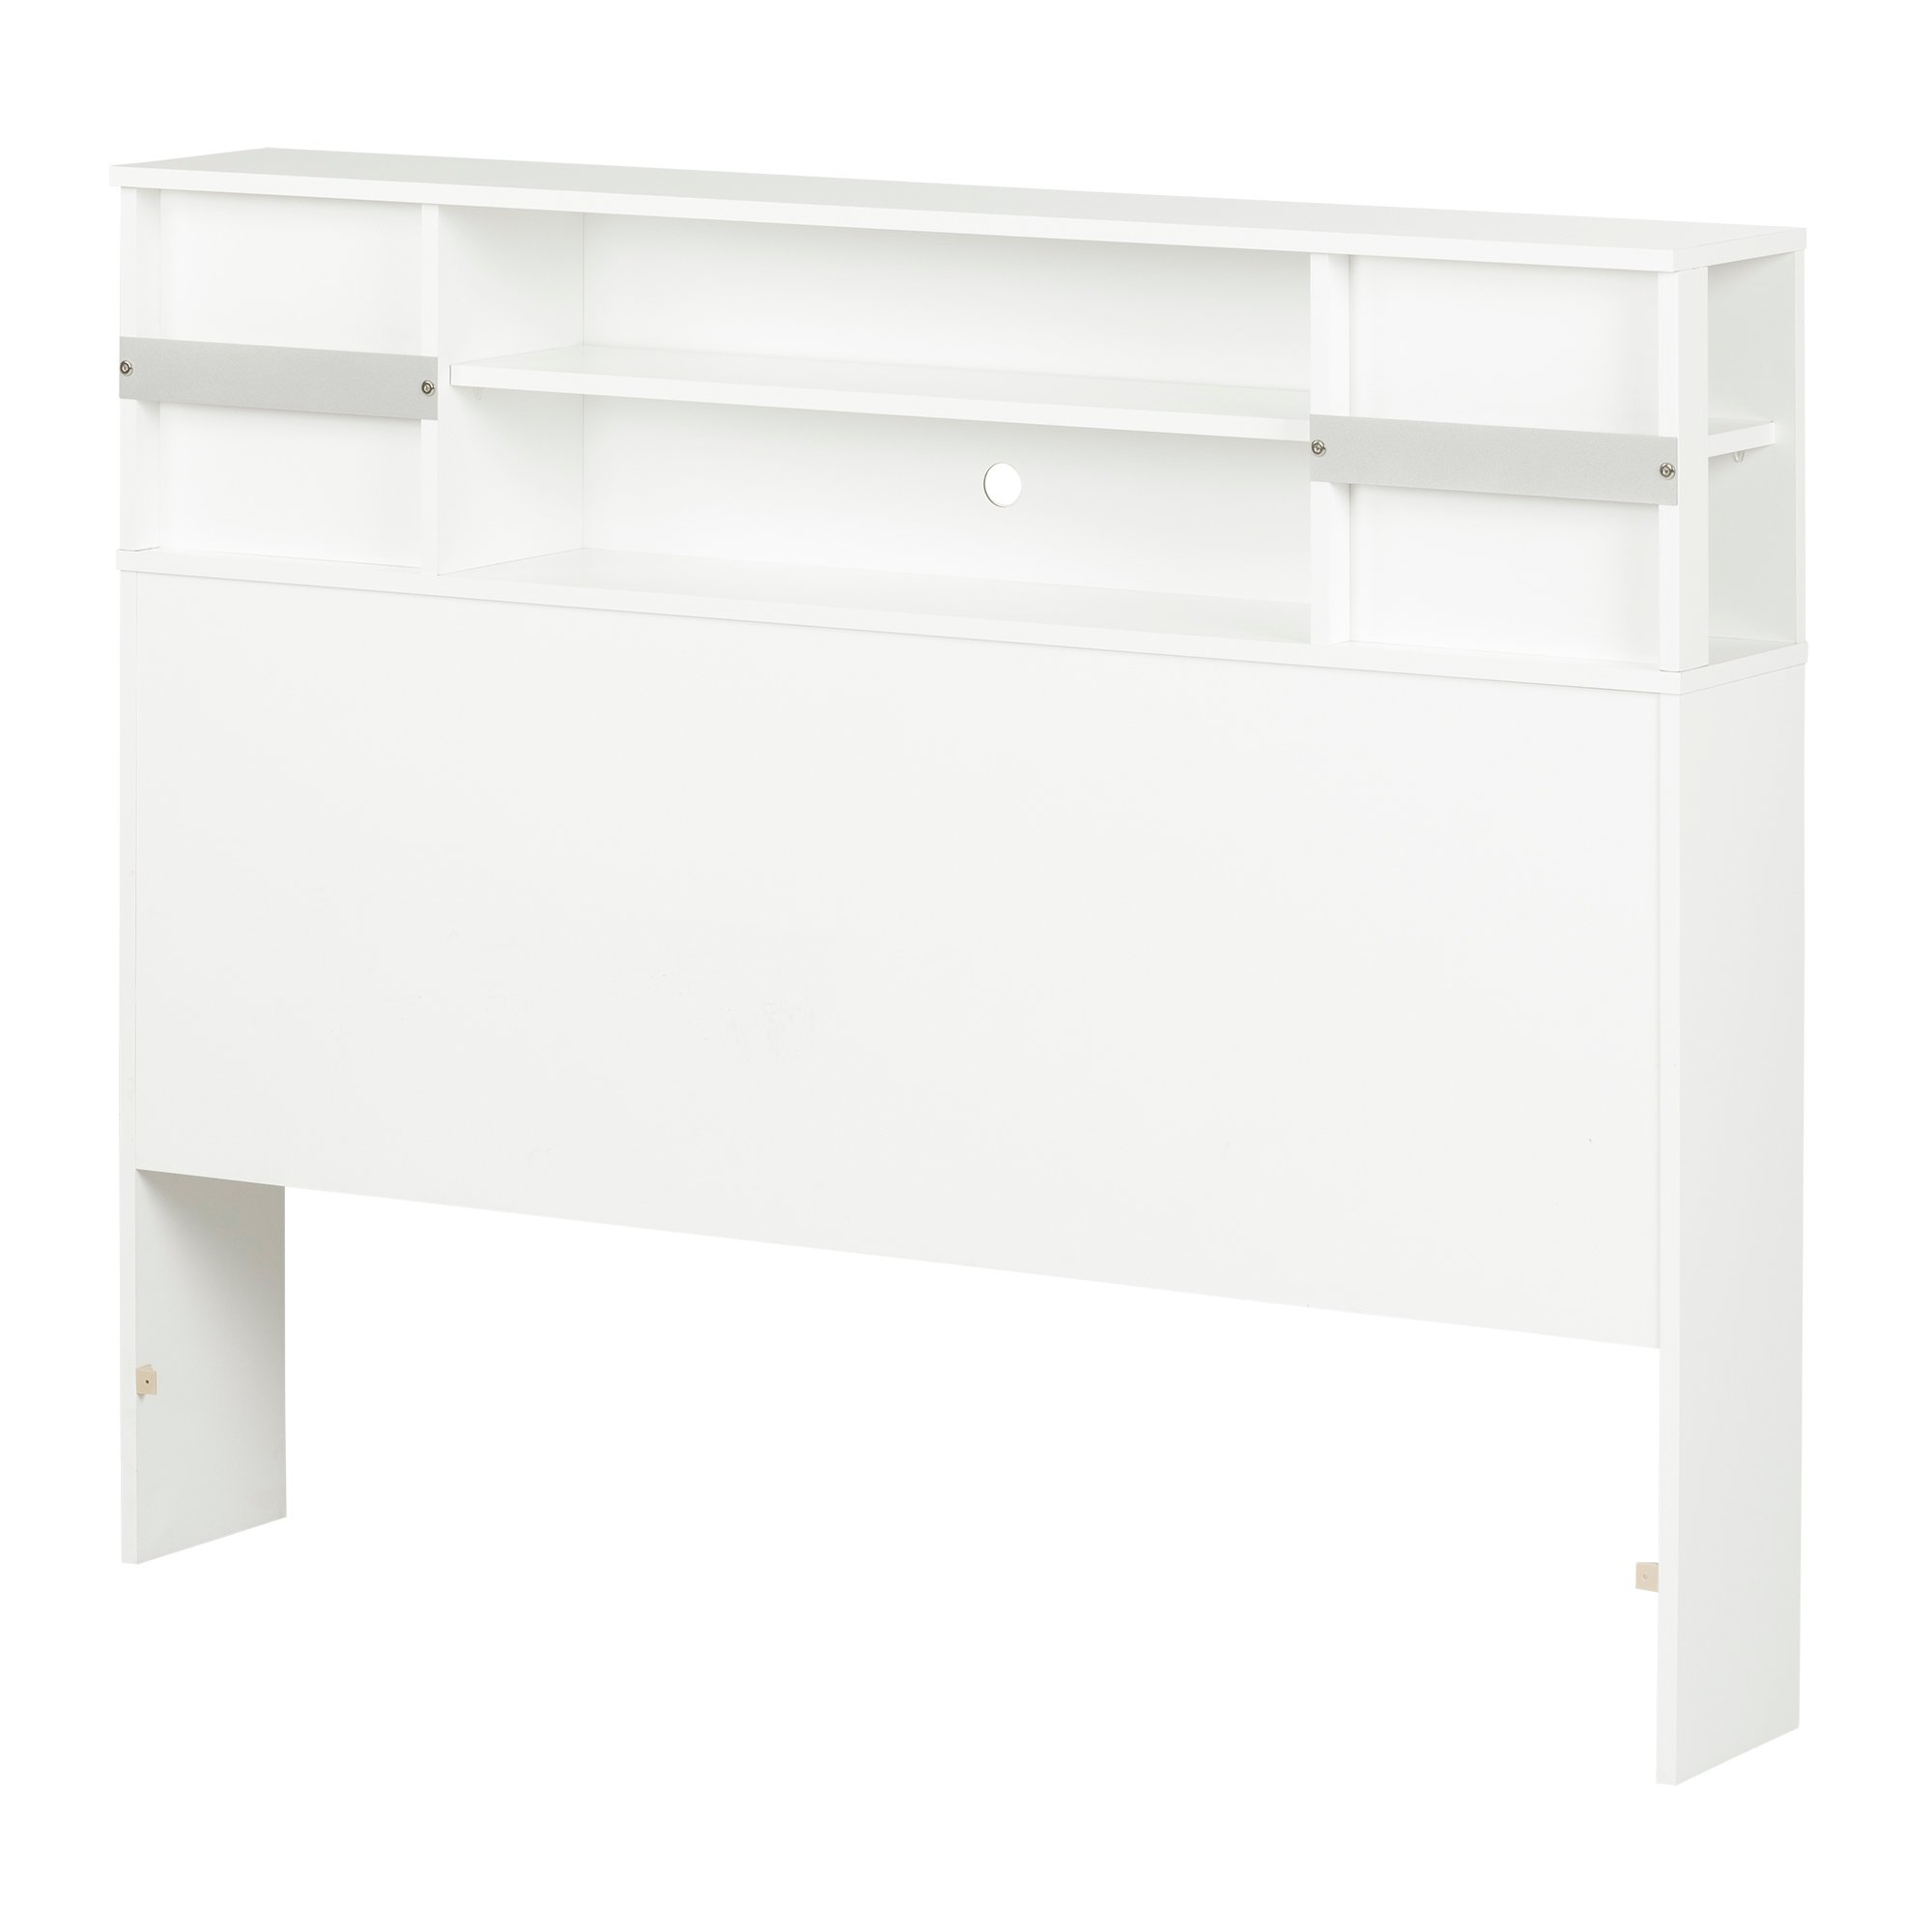 South Shore Step One Bookcase Headboard with Compartment Storage, Full 54-inch, White